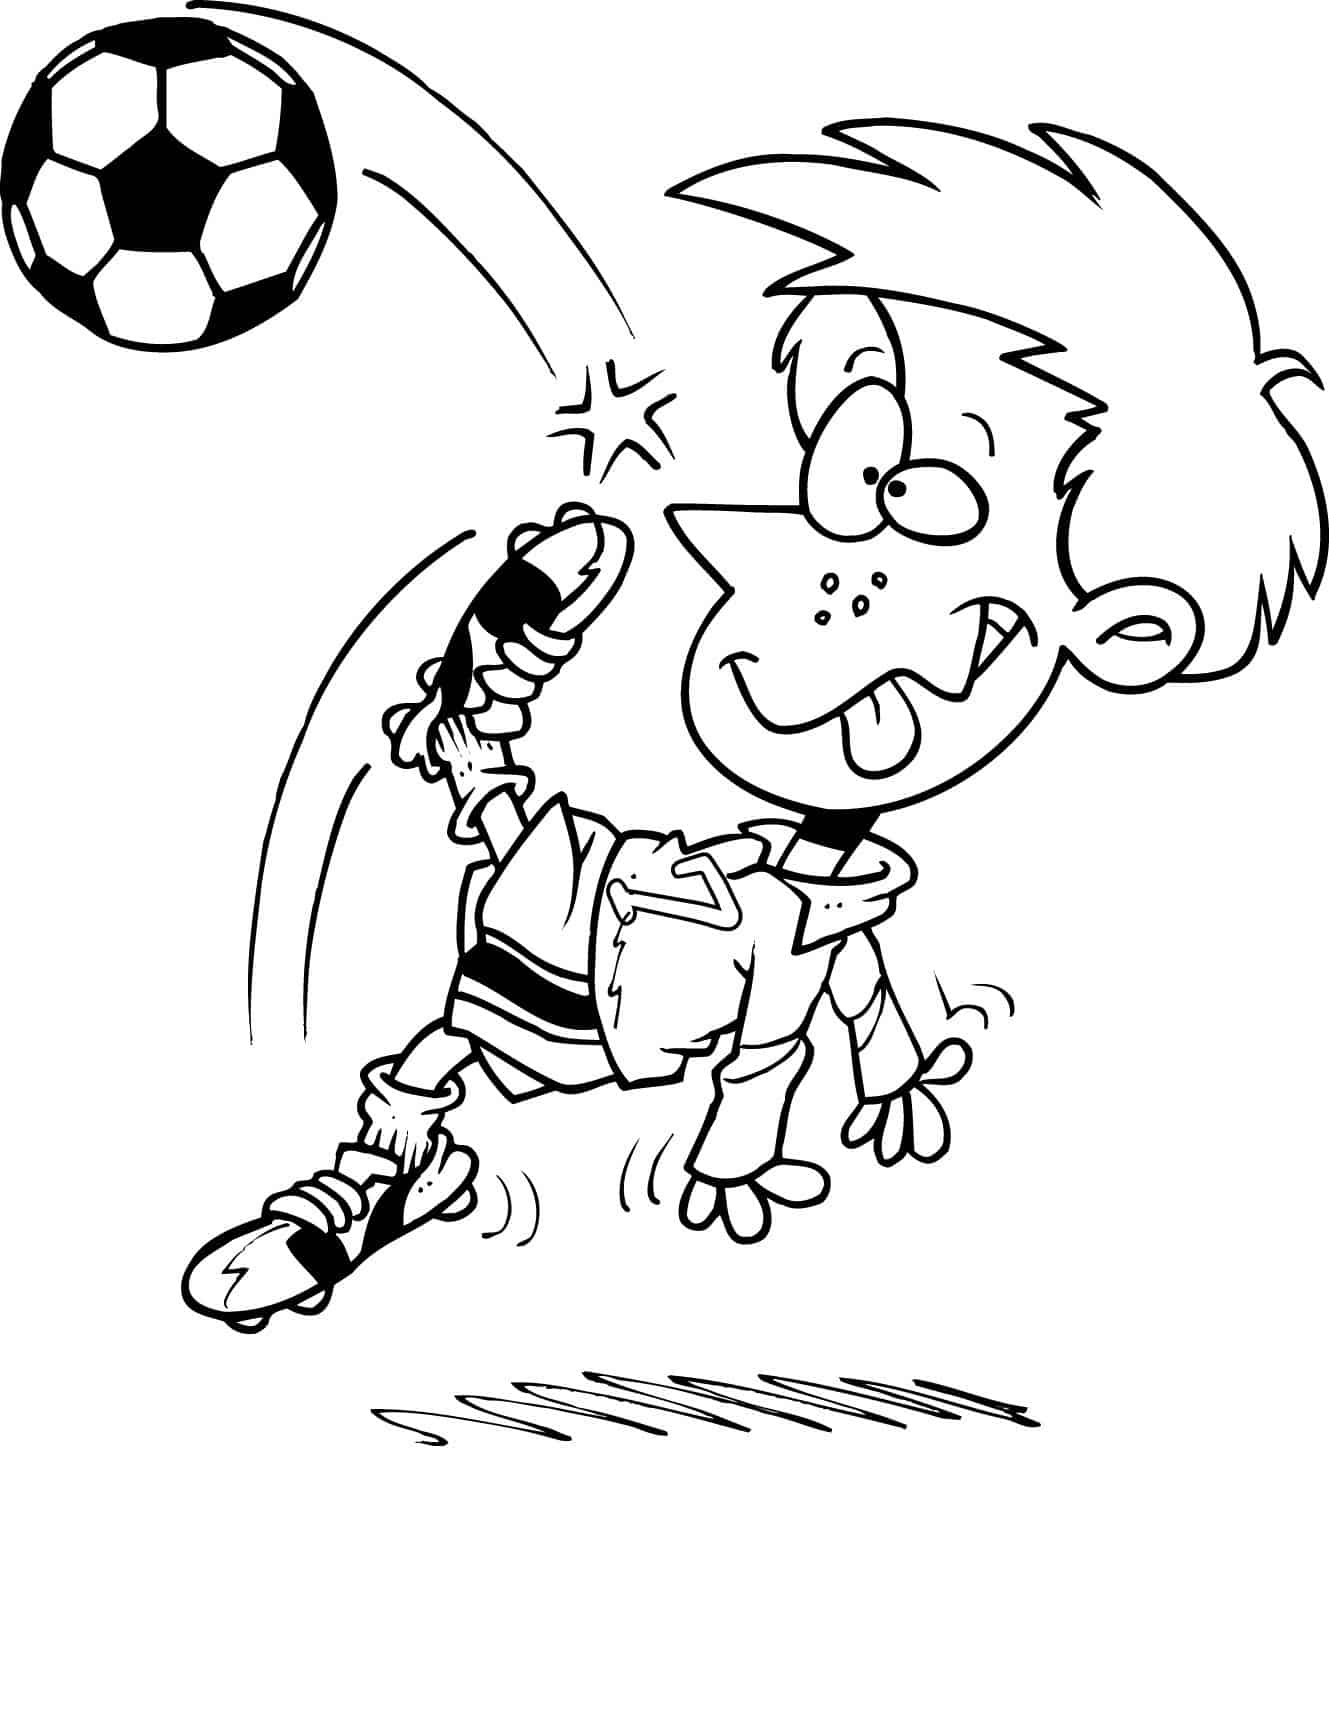 5 Fun Football Soccer Kids Printables